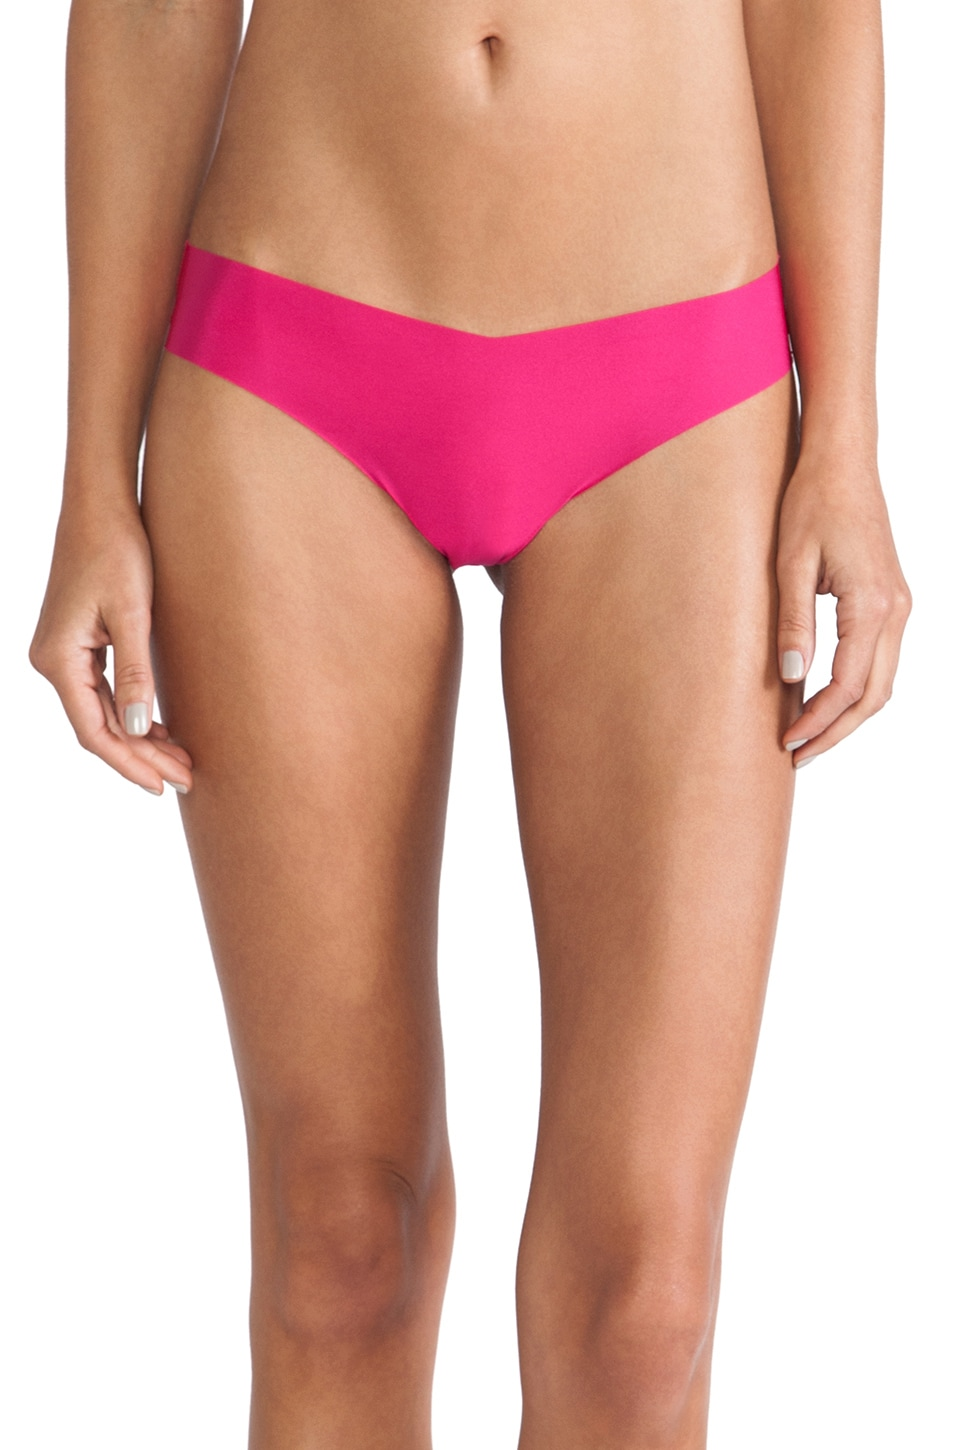 Commando Thong in Hot Pink